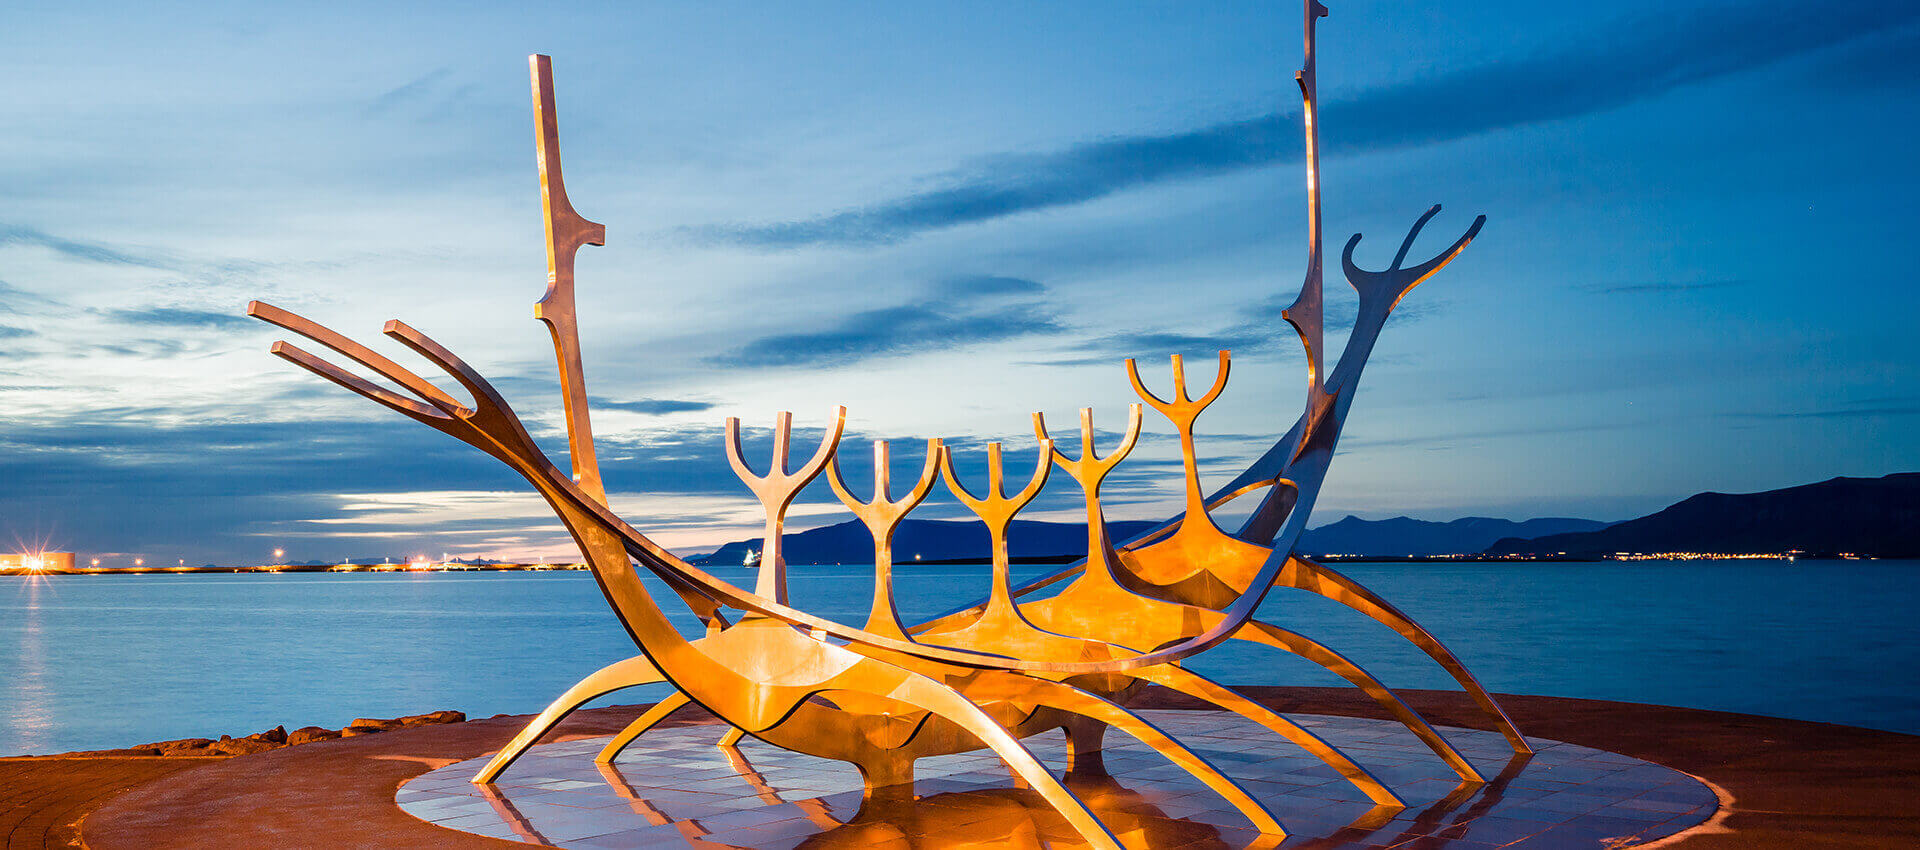 Sculpture of a boat in Iceland